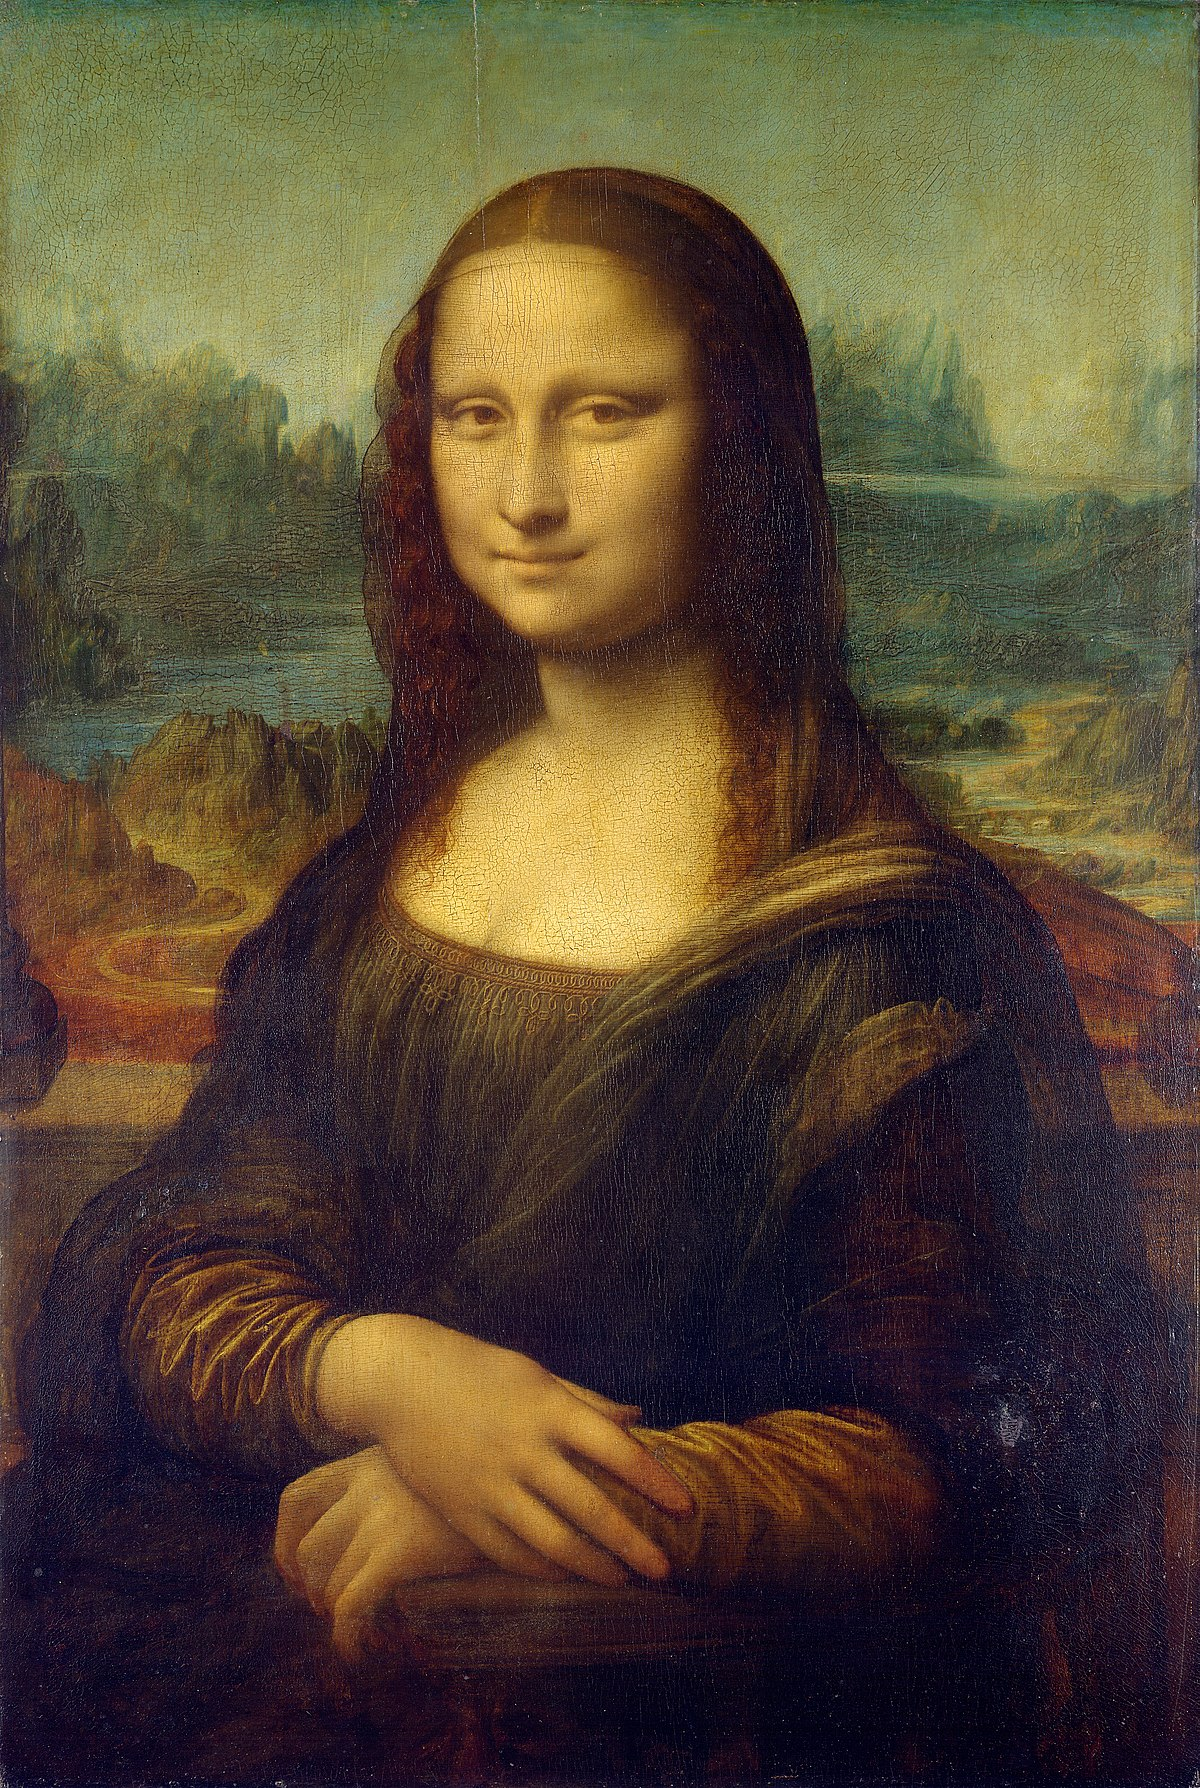 1200px-Mona_Lisa,_by_Leonardo_da_Vinci,_from_C2RMF_retouched.jpg